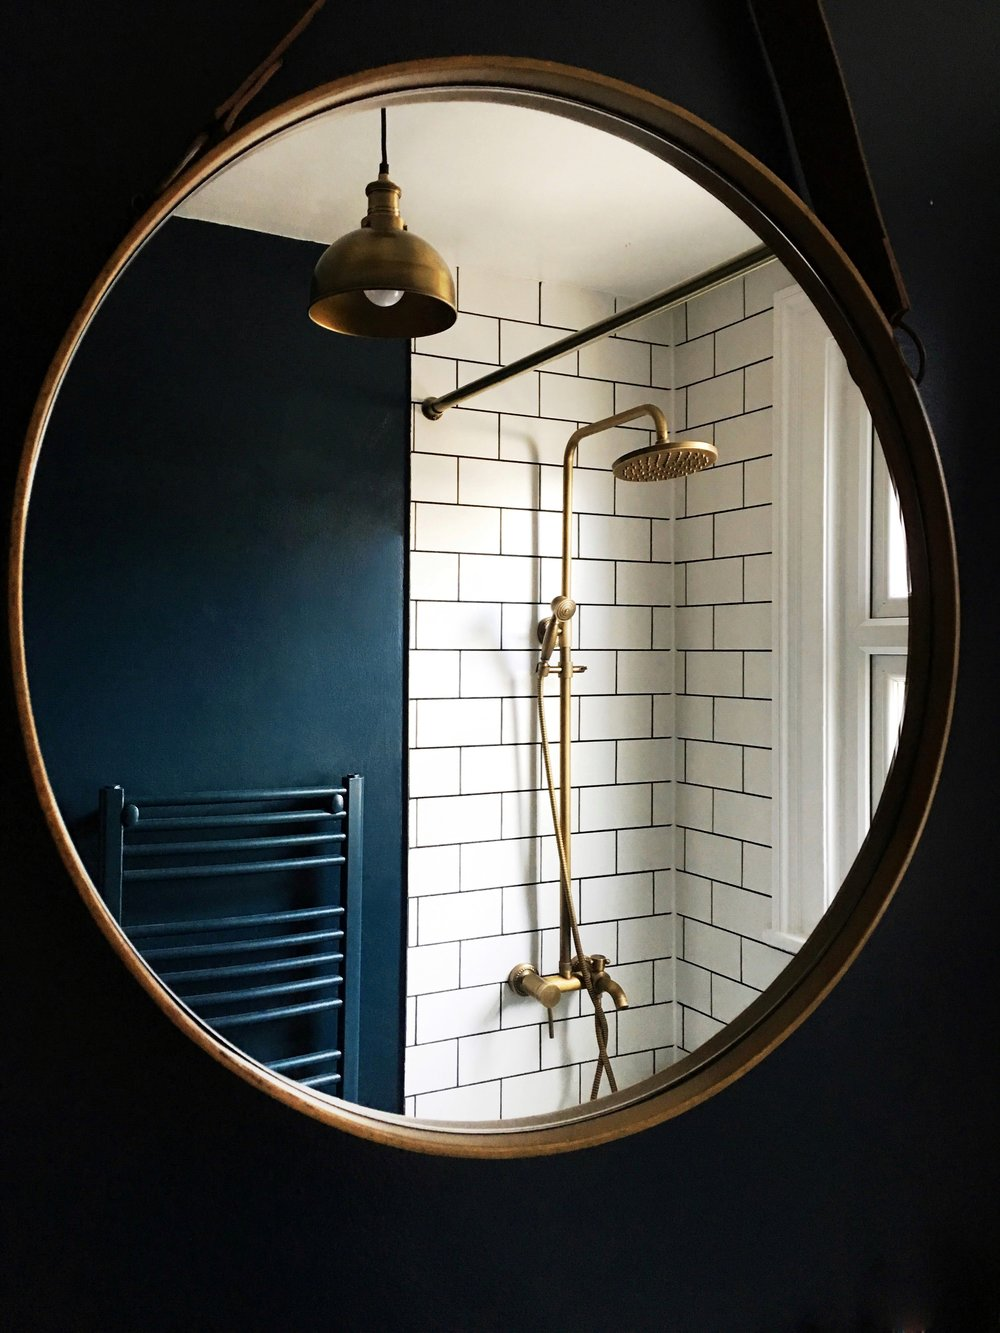 Ruthies Bathroom really is a thing of beauty, she has used Hague Blue against those fabulous brass fittings and metro tiles to great effect- i love that she has painted the towel rail too to blend  in with the dark walls   @design_soda_ruthie